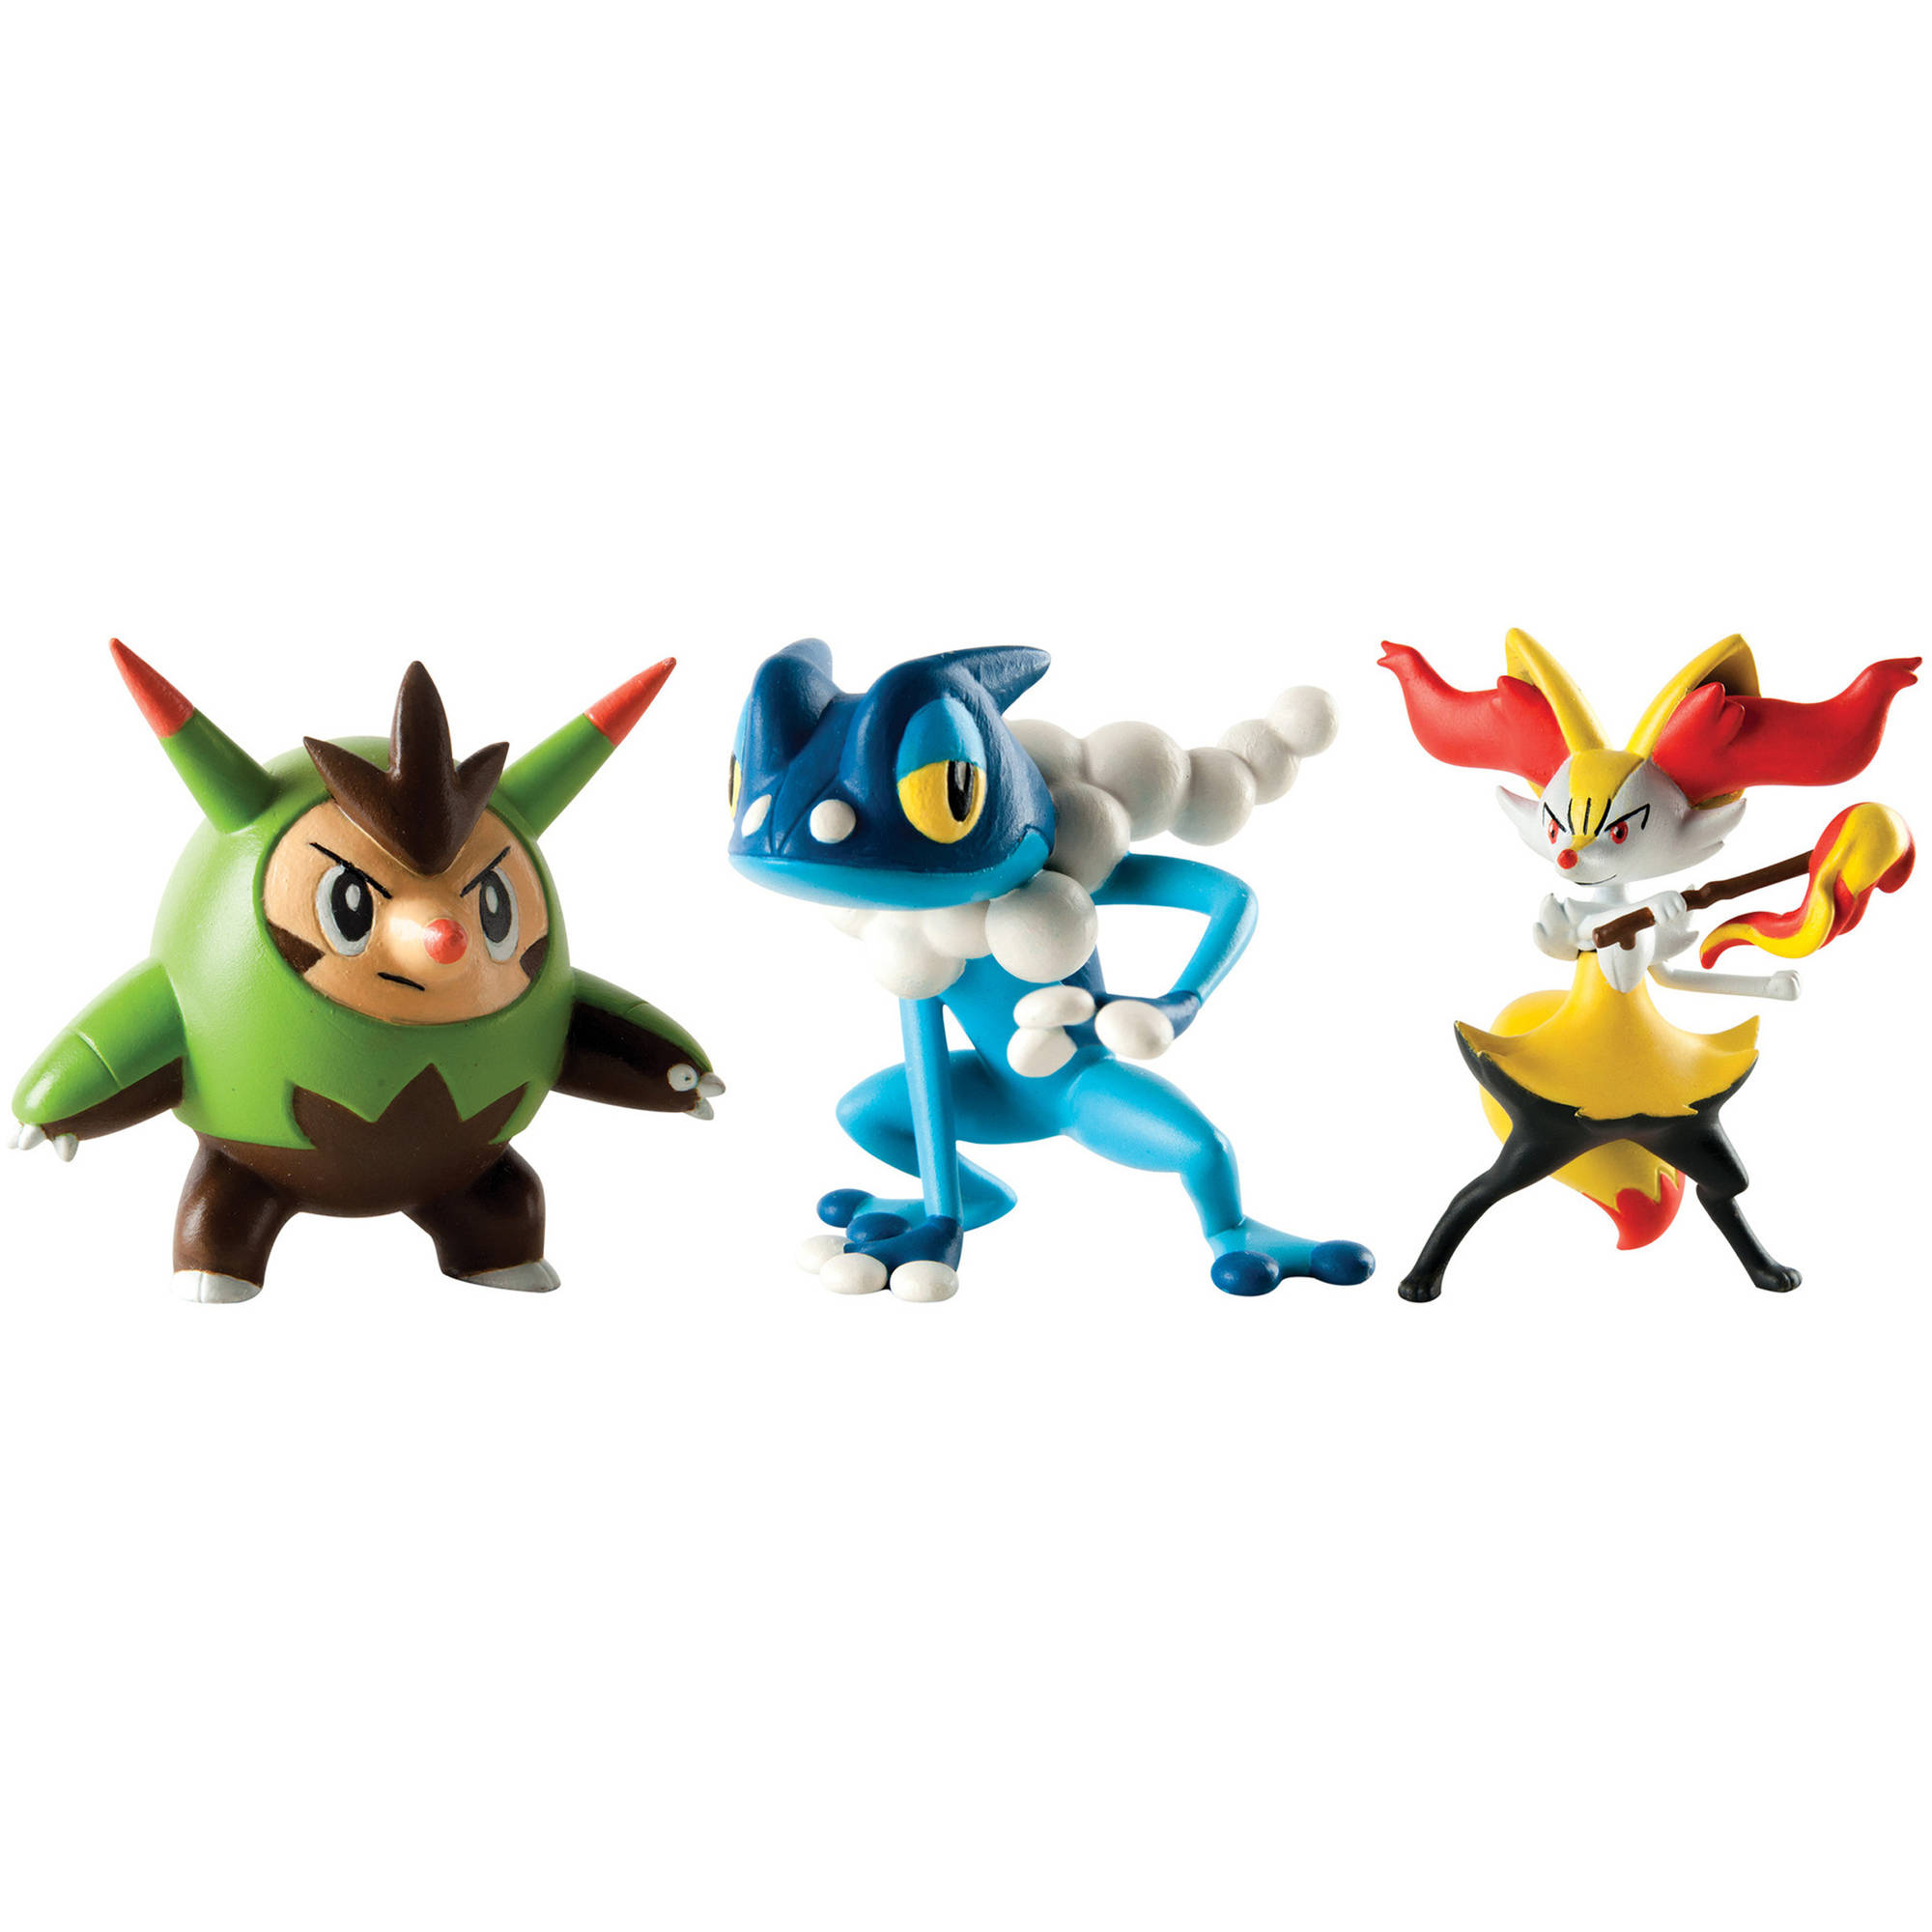 TOMY Pokemon Action Pose Figure 3-Pack. Quilladin Braixen and Frogad